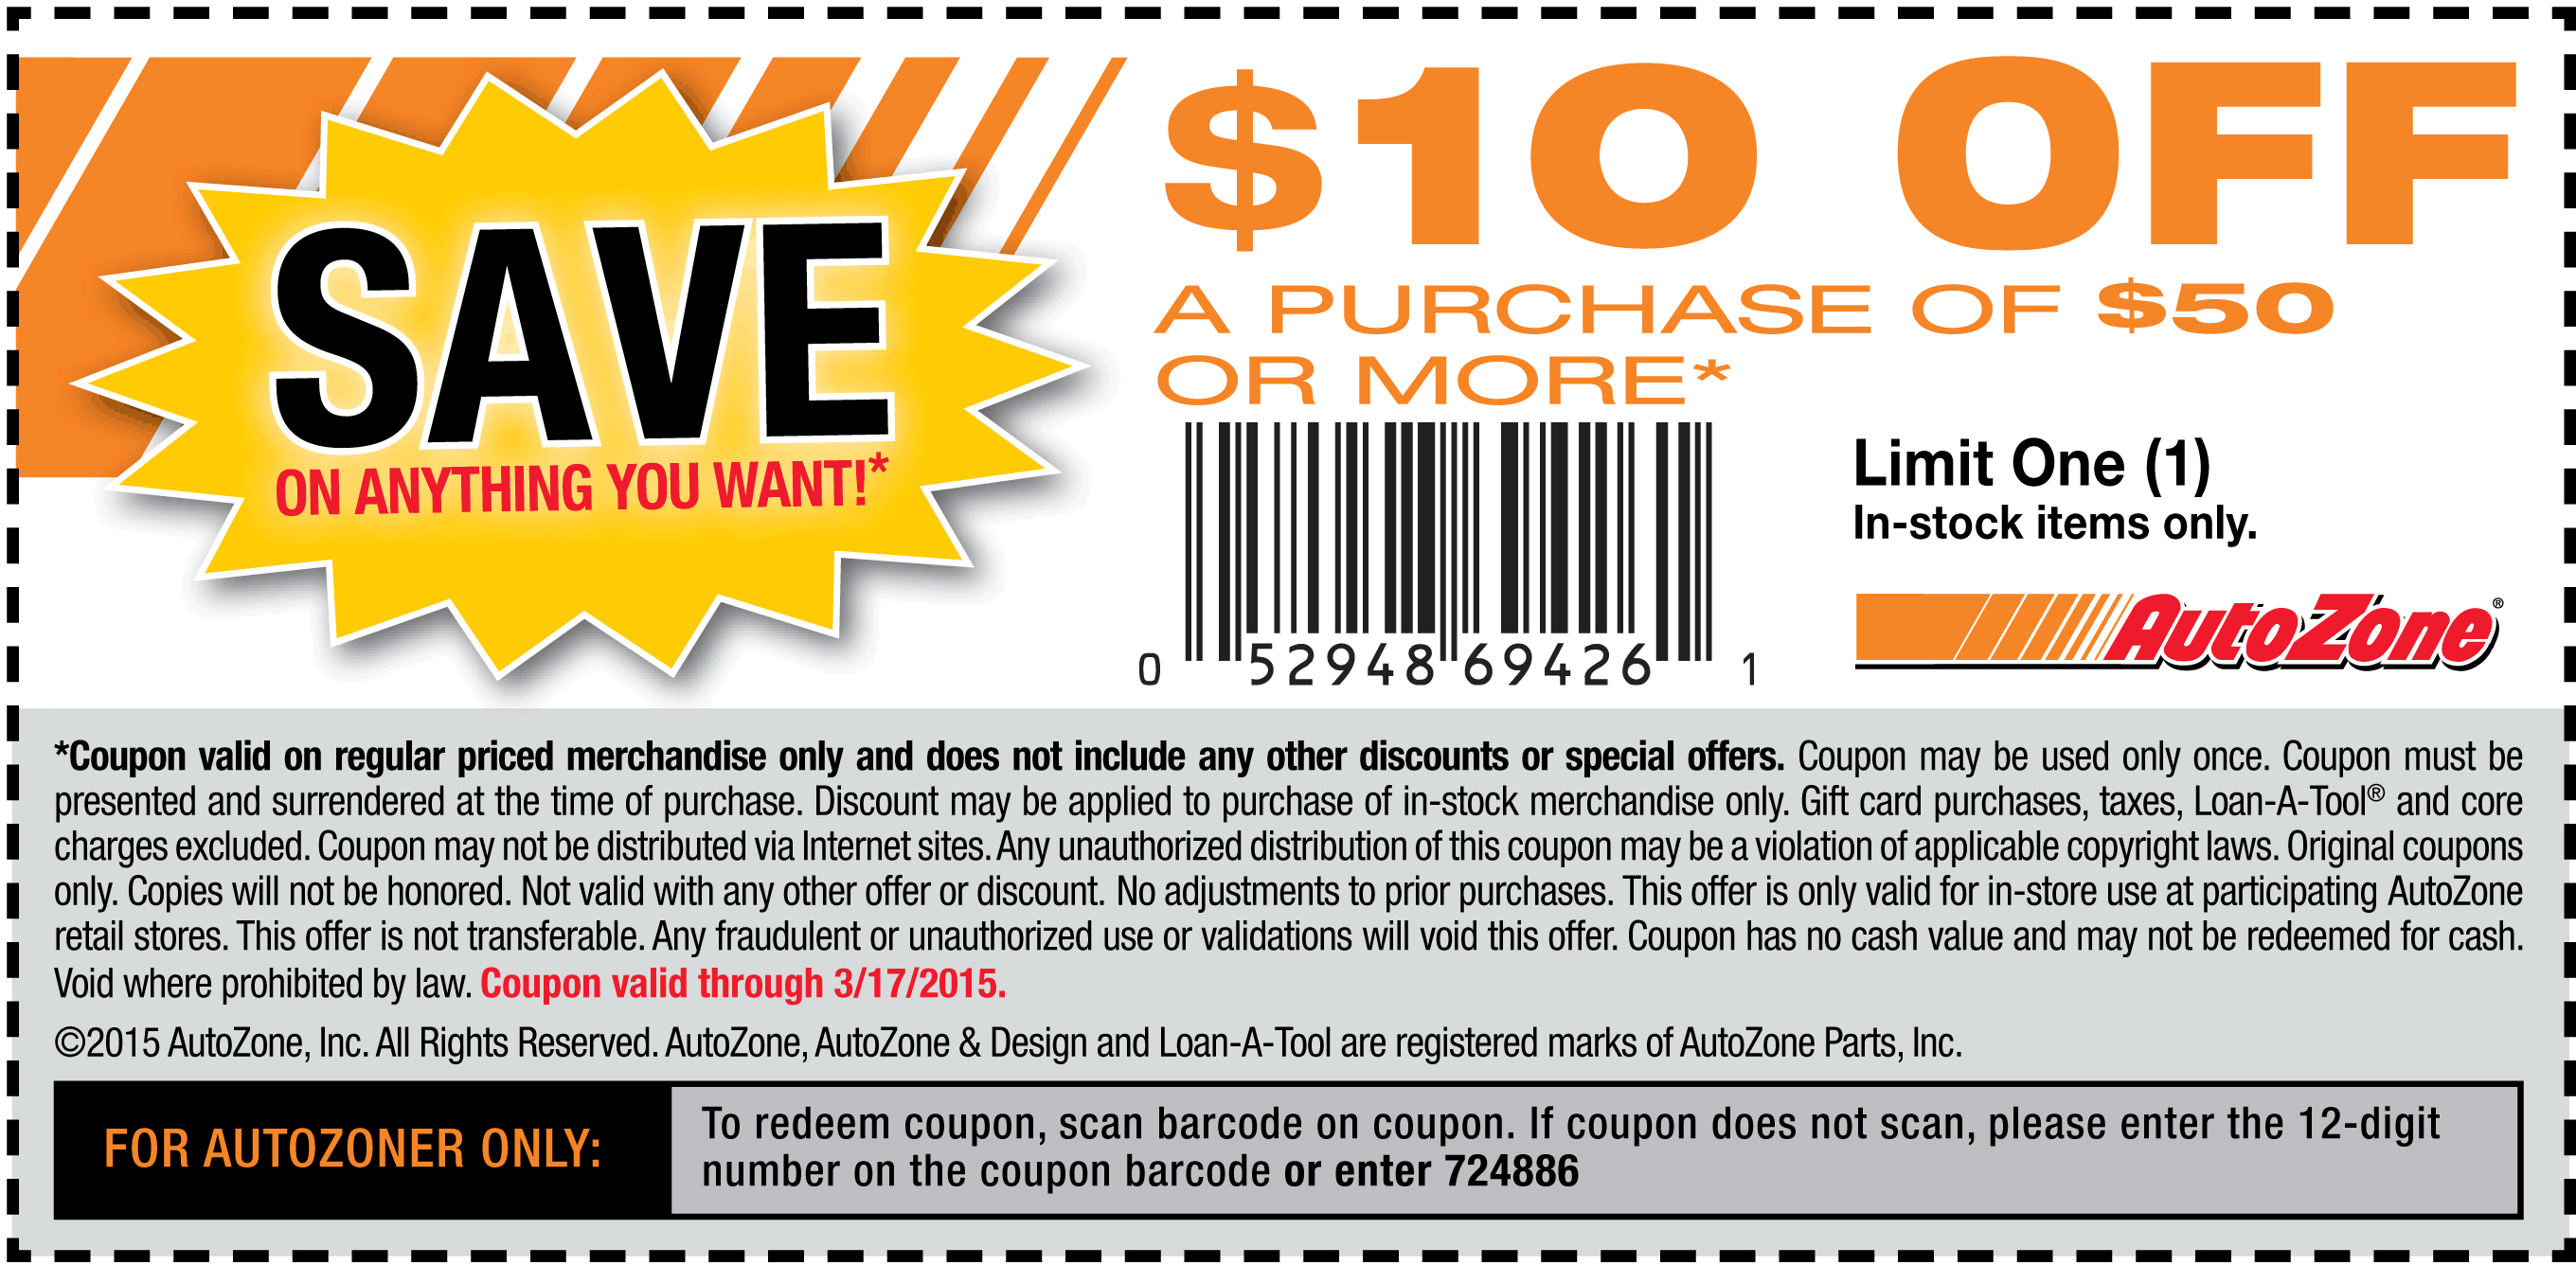 Autozone Coupons 10 Off 50 At Autozone Free Coupons By Mail Coupon Apps Printable Coupons